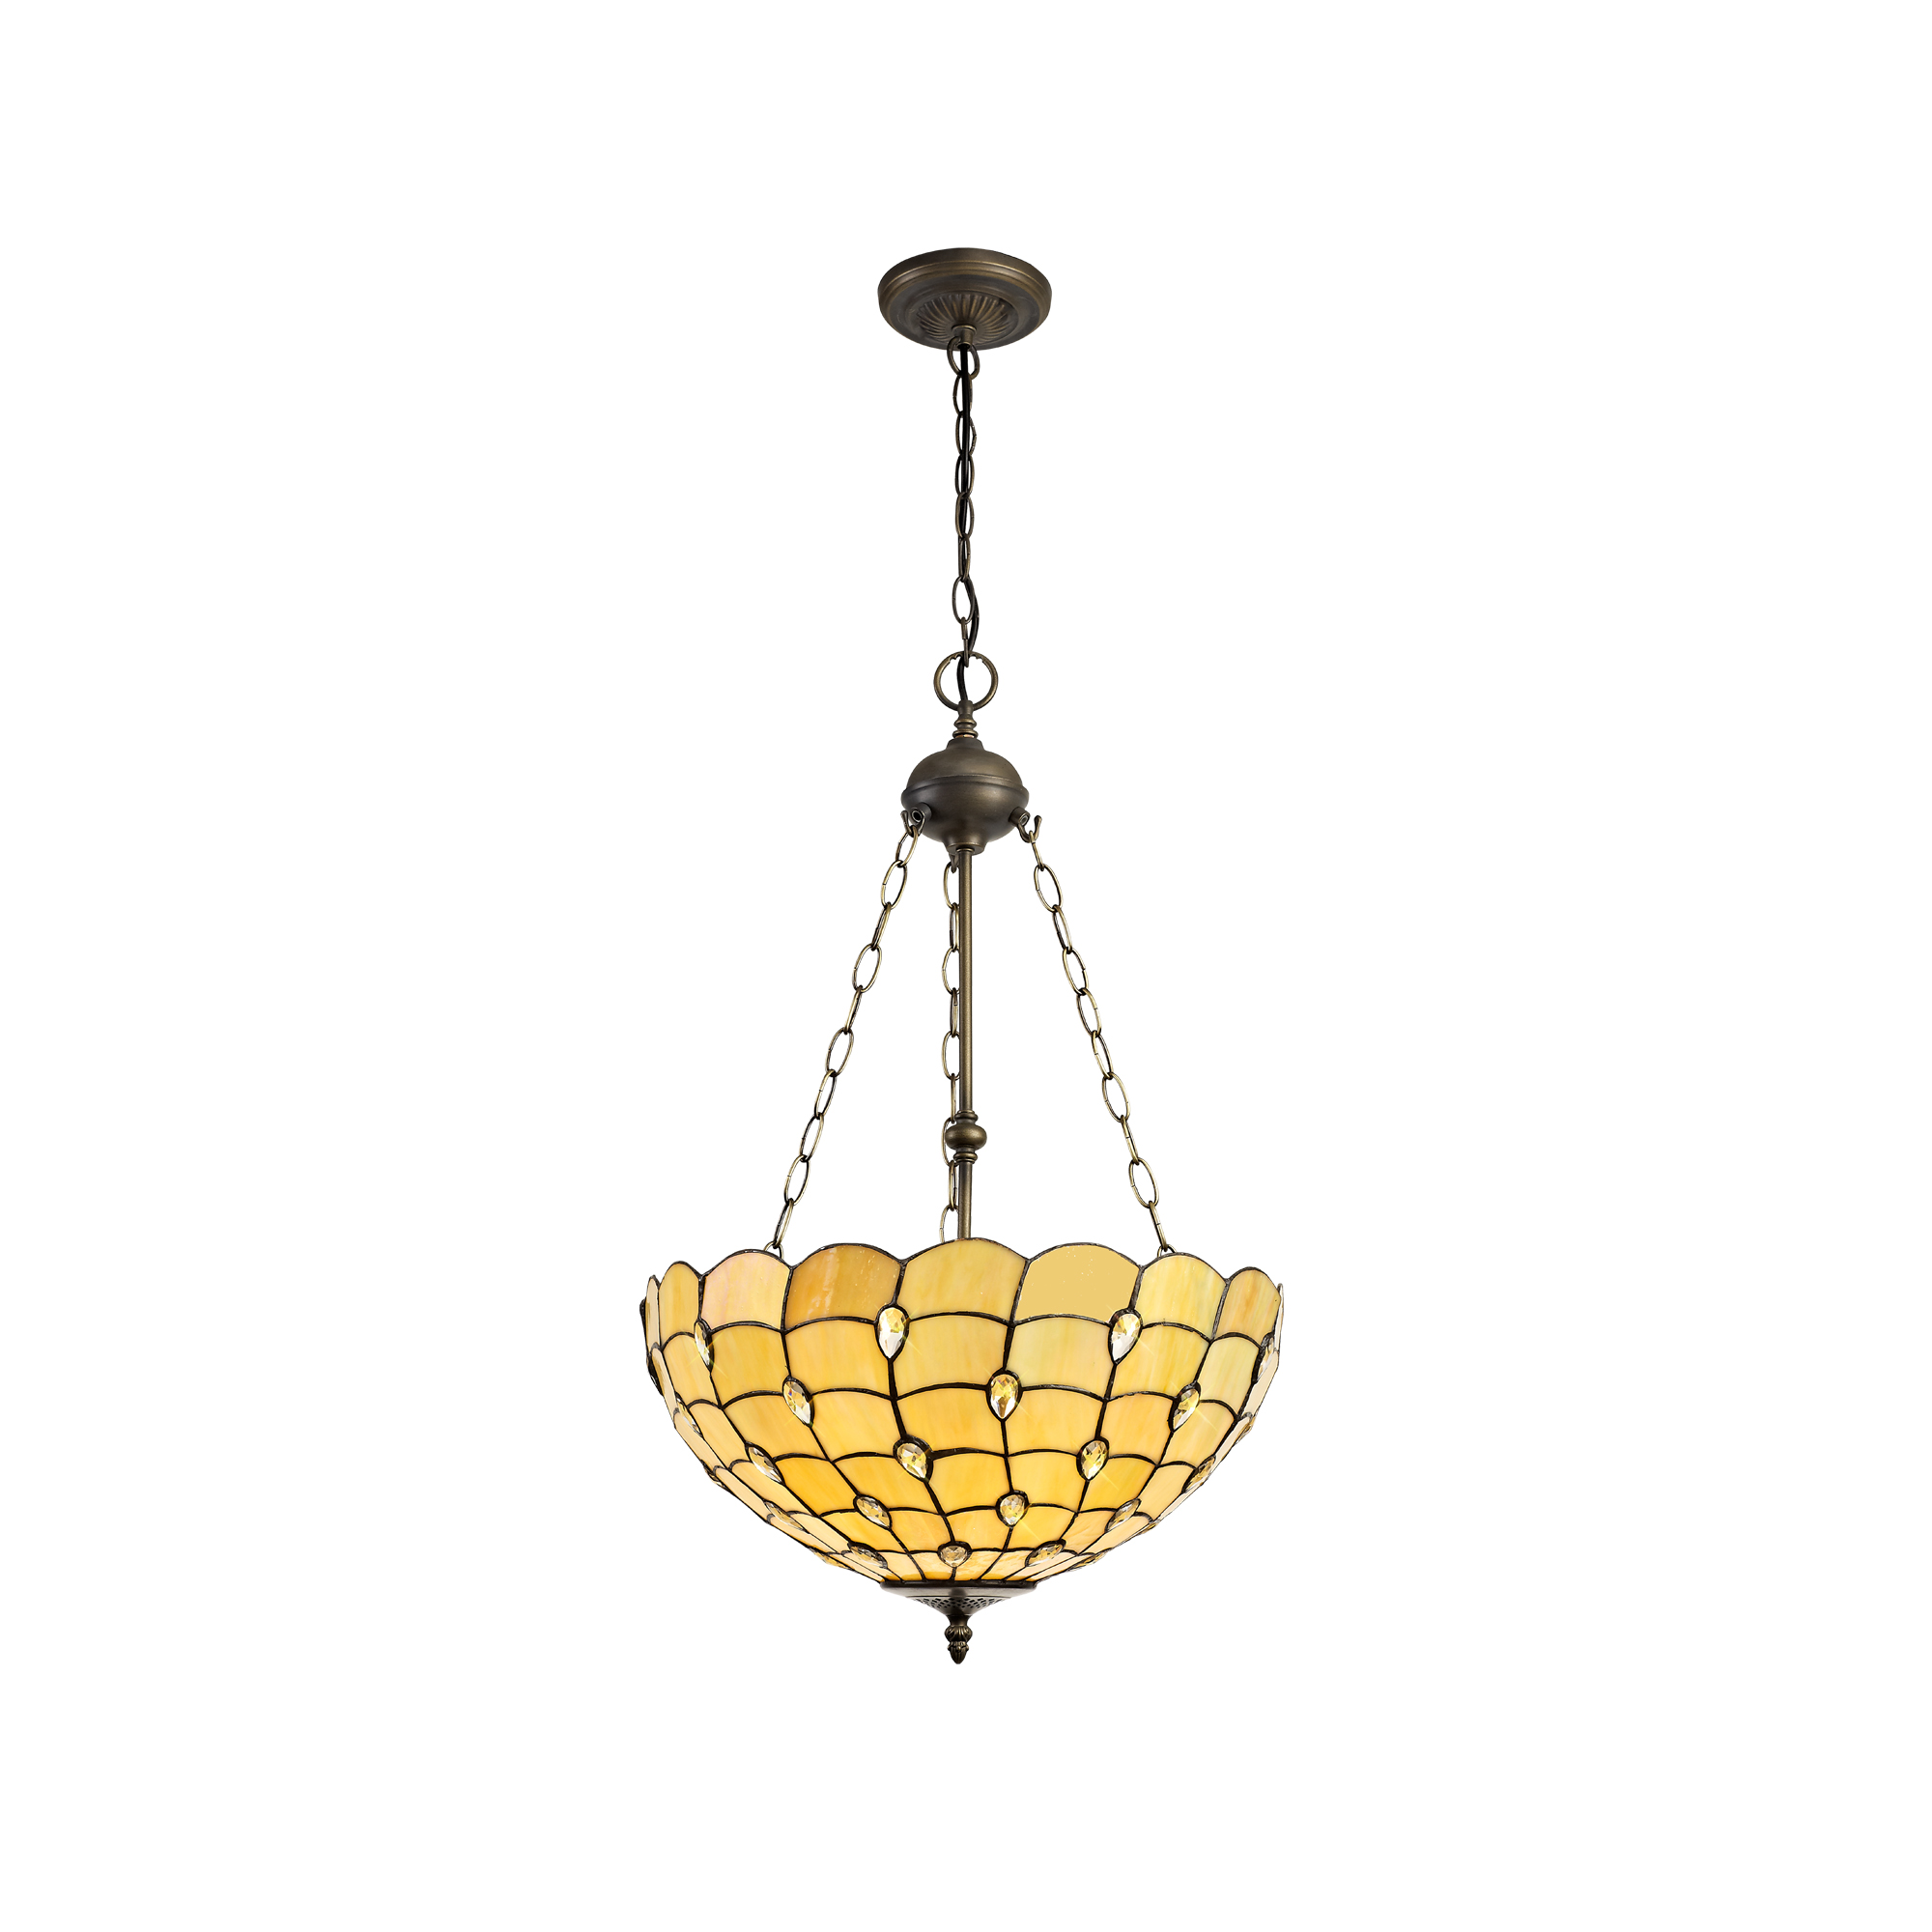 3 Light Uplighter Pendant E27 With 50cm Tiffany Shade, Beige/Clear Crystal/Aged Antique Brass